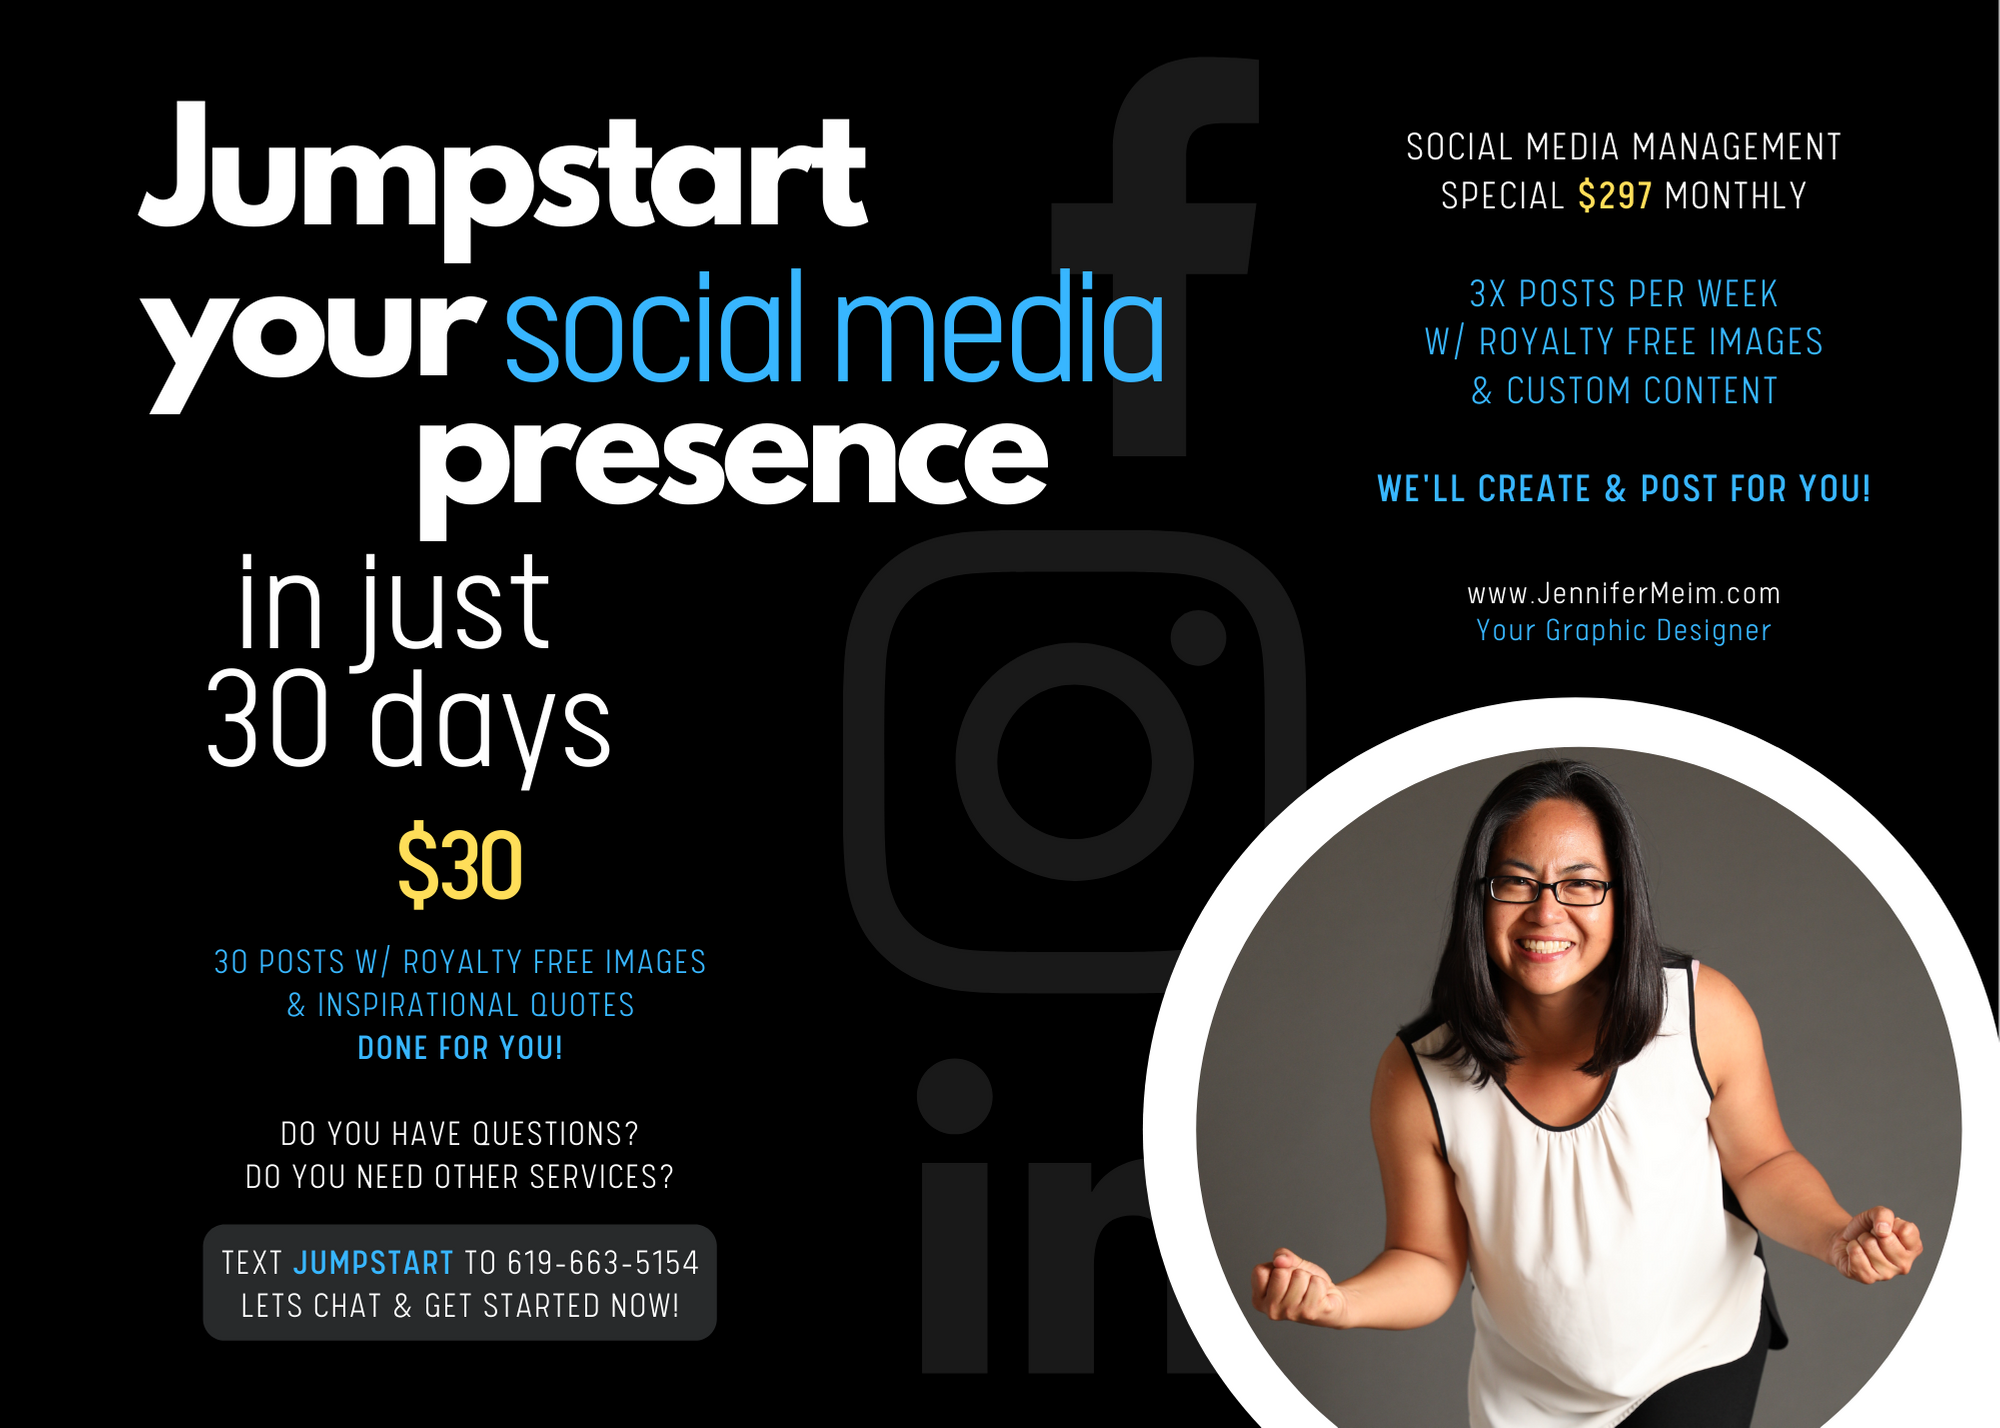 Jumpstart Your Social Media